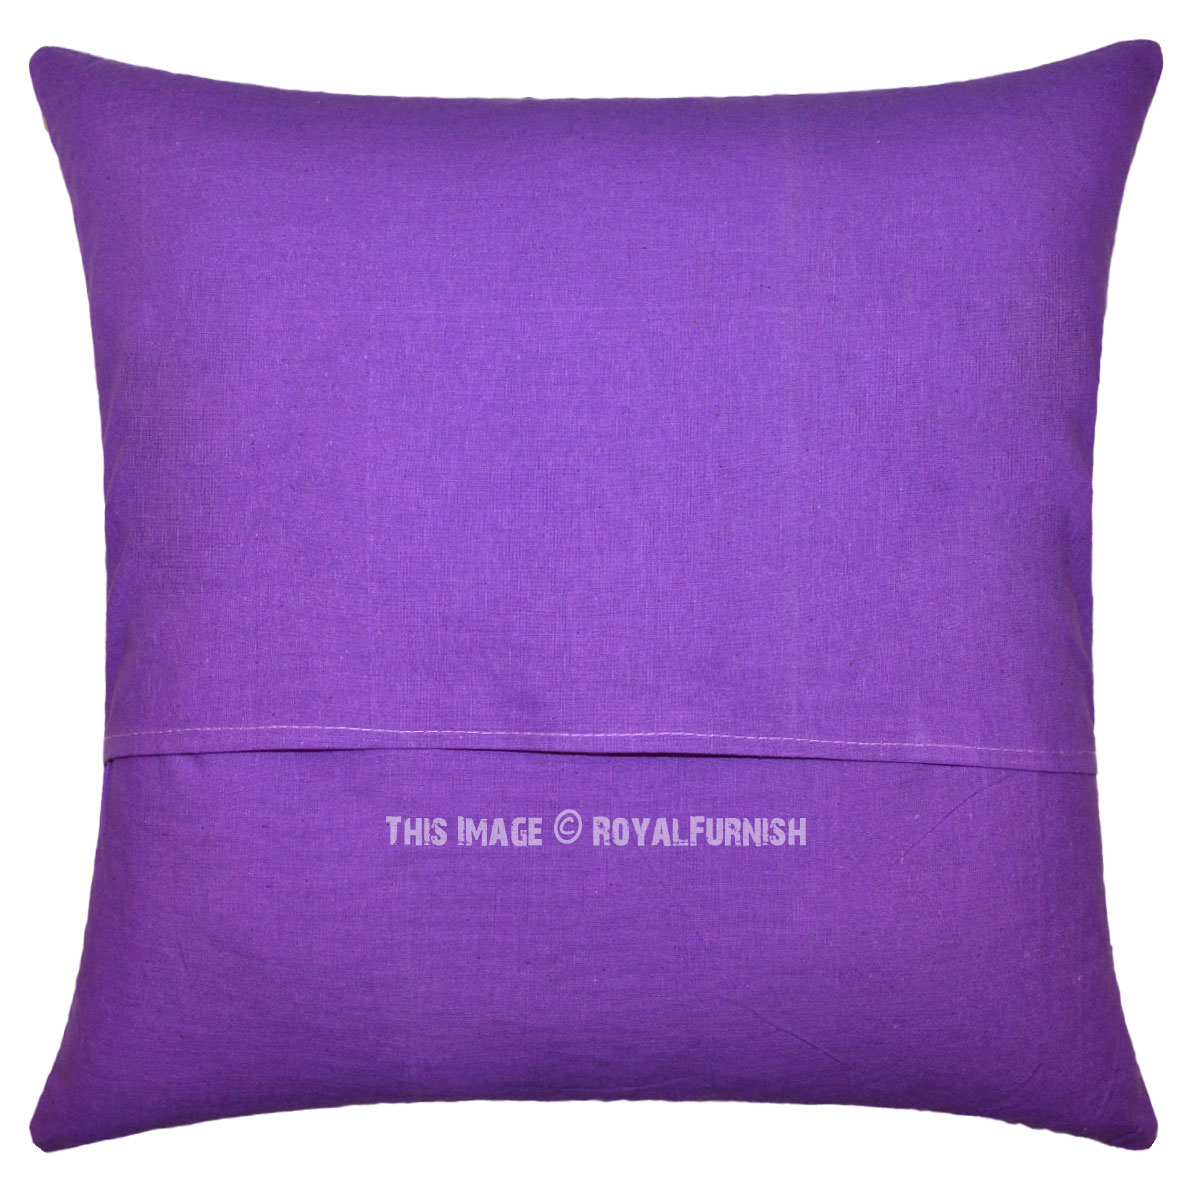 Oversized Decorative Pillow Covers : Large Purple Decorative Paisley Pattern Cotton Throw Pillow Cushion Cover - RoyalFurnish.com